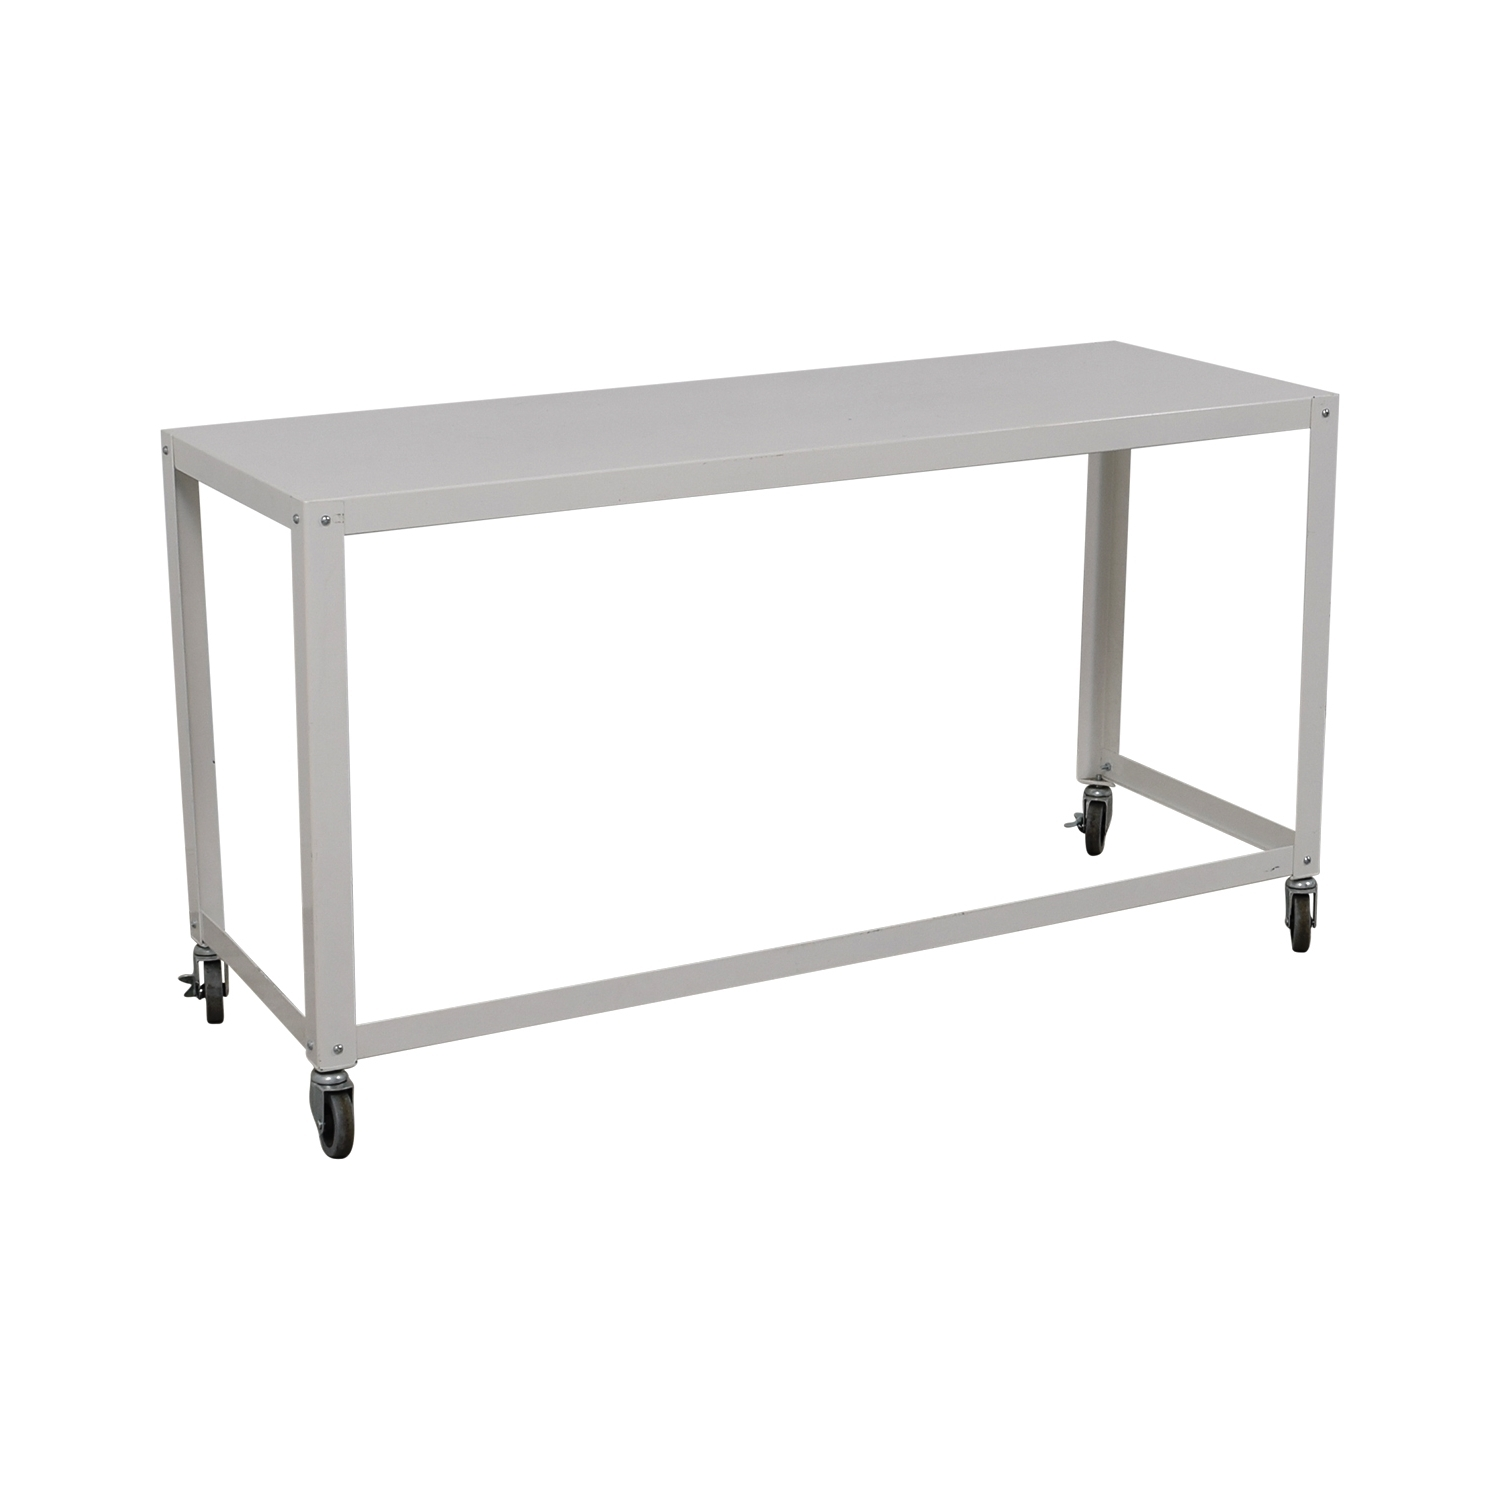 [%Widely Used Go Cart White Rolling Coffee Tables In 81% Off – Cb2 Cb2 Go Cart White Rolling Desk / Tables|81% Off – Cb2 Cb2 Go Cart White Rolling Desk / Tables Inside Latest Go Cart White Rolling Coffee Tables%] (View 4 of 20)